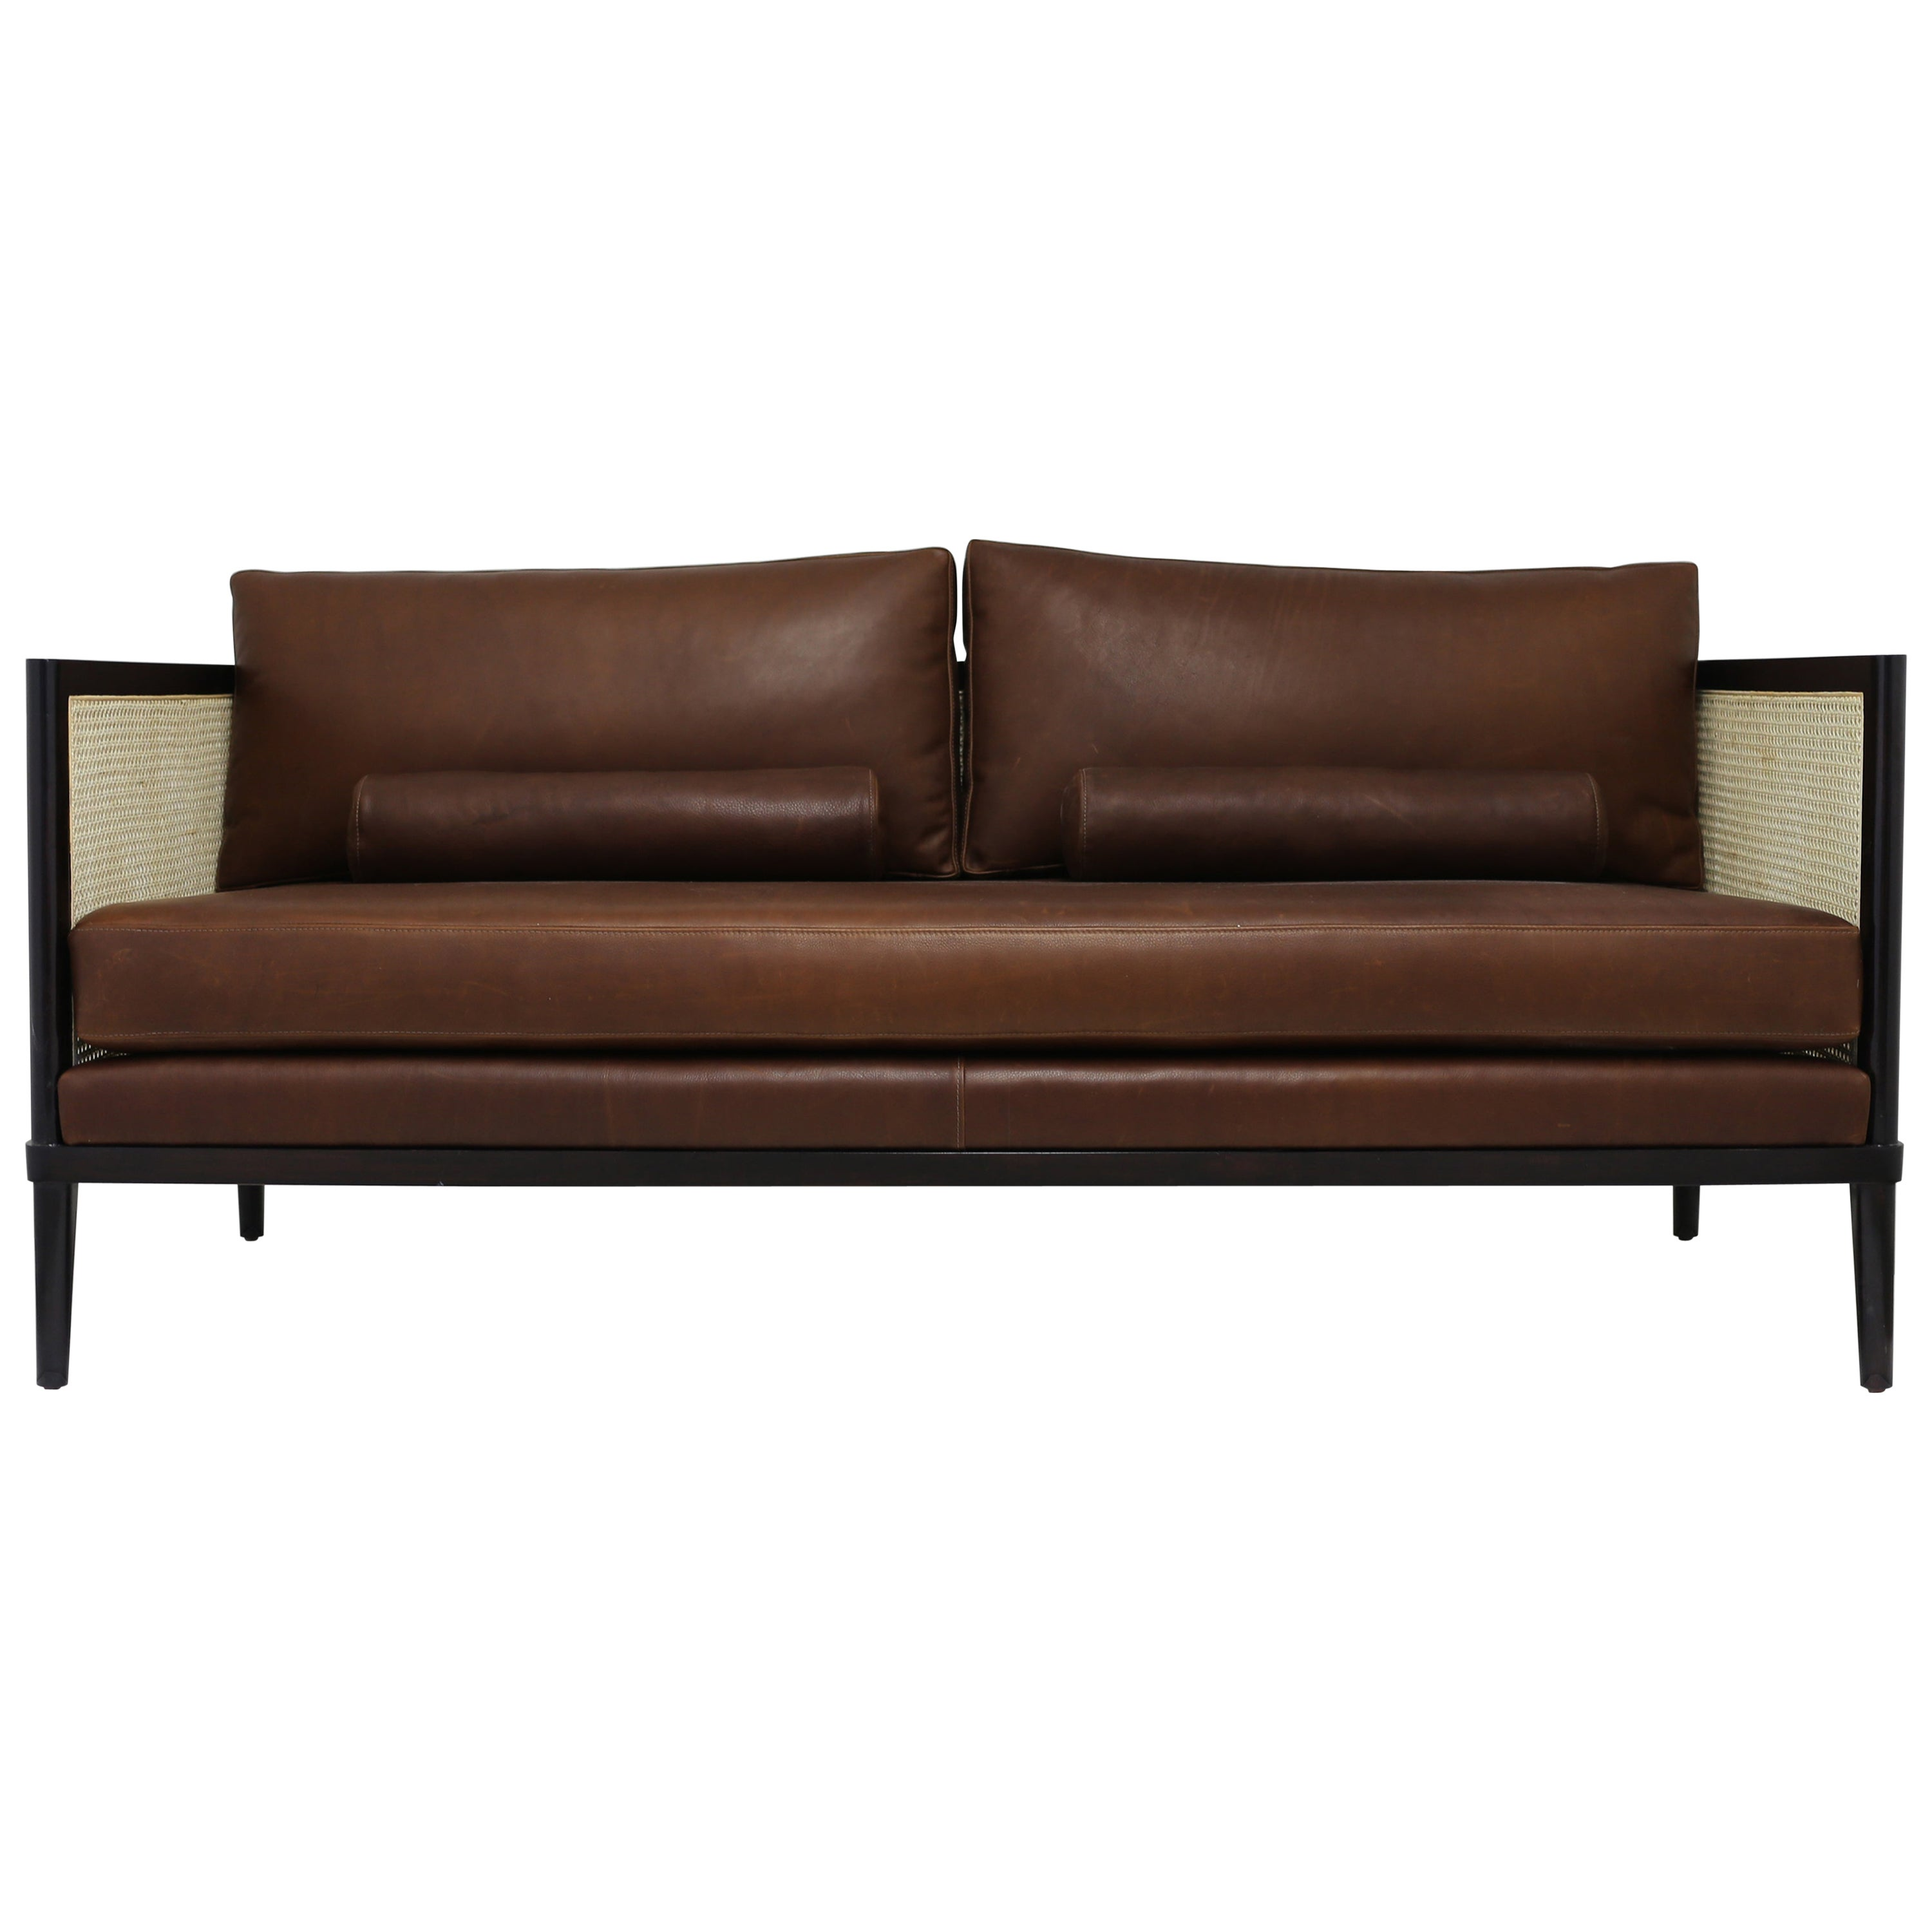 Caned Settee with Leather Back and Seat Cushions with Wood Frame